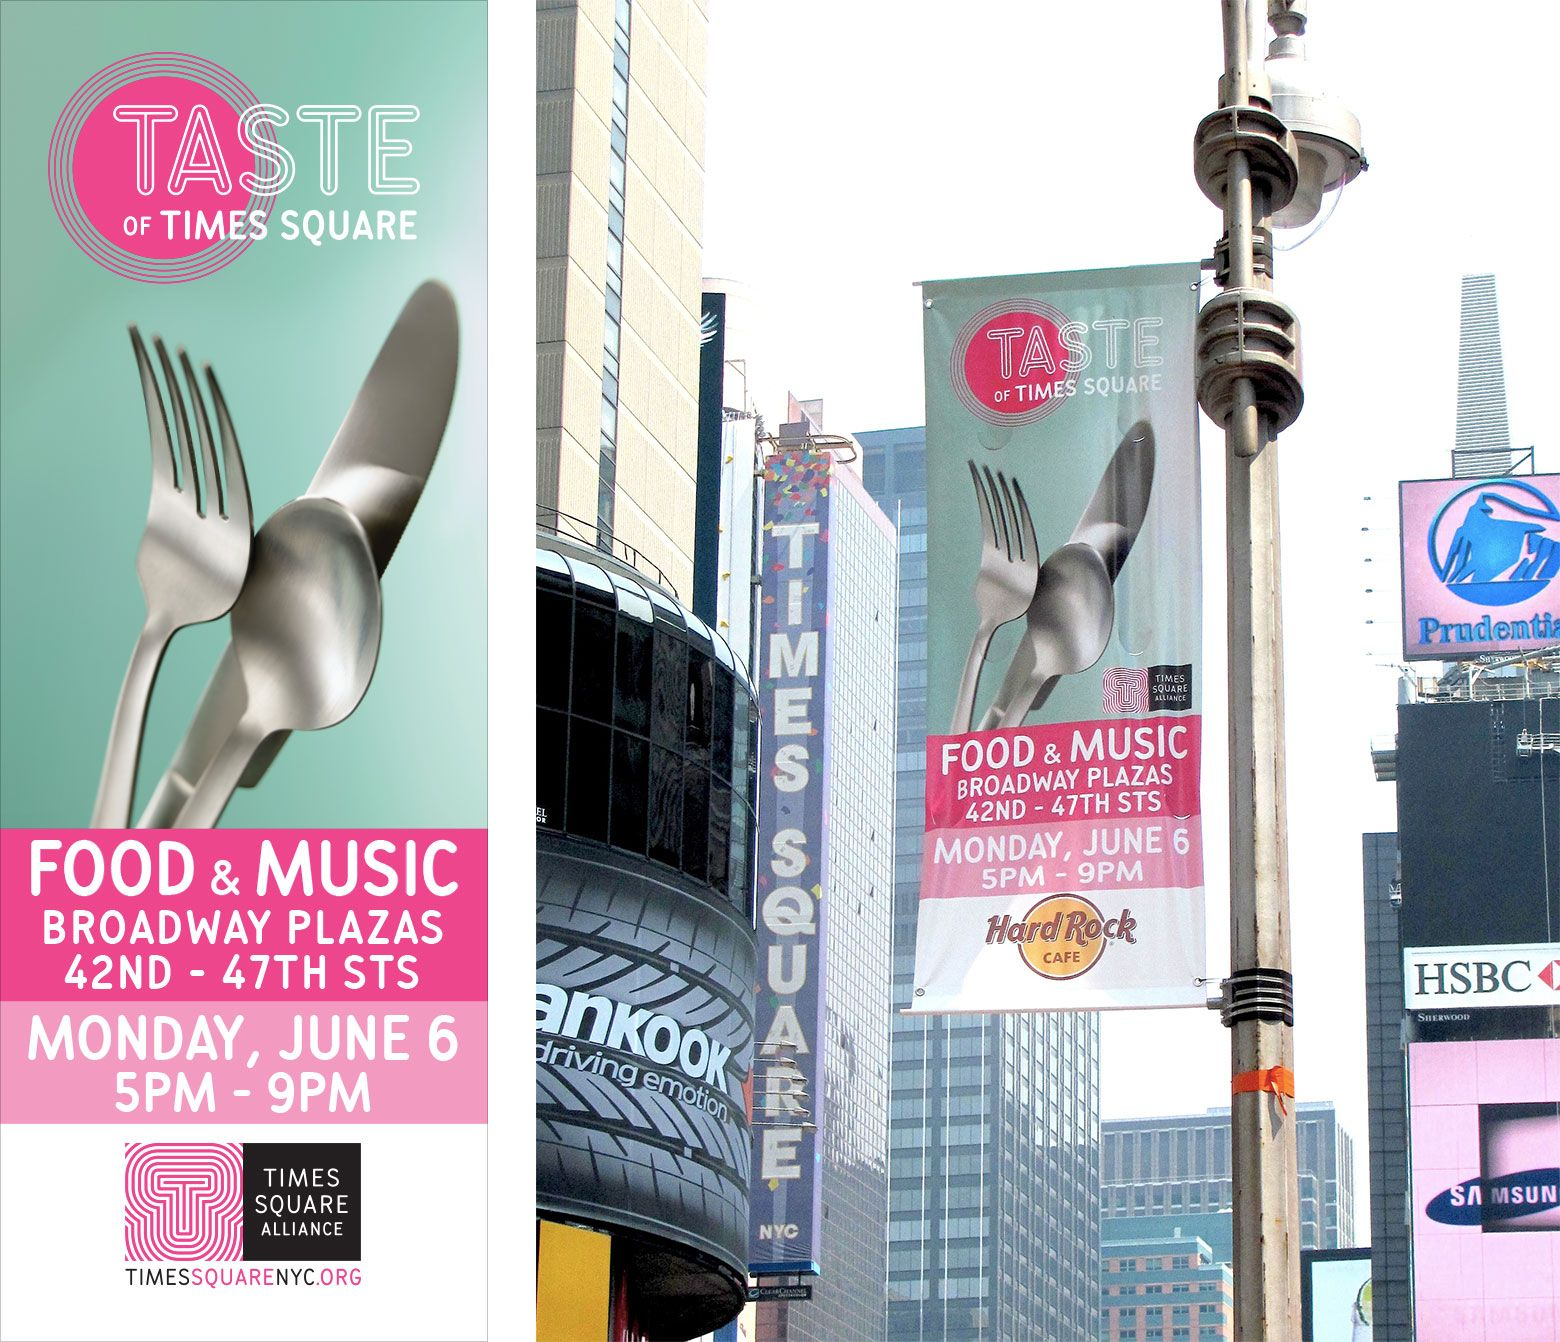 Taste of Times Square